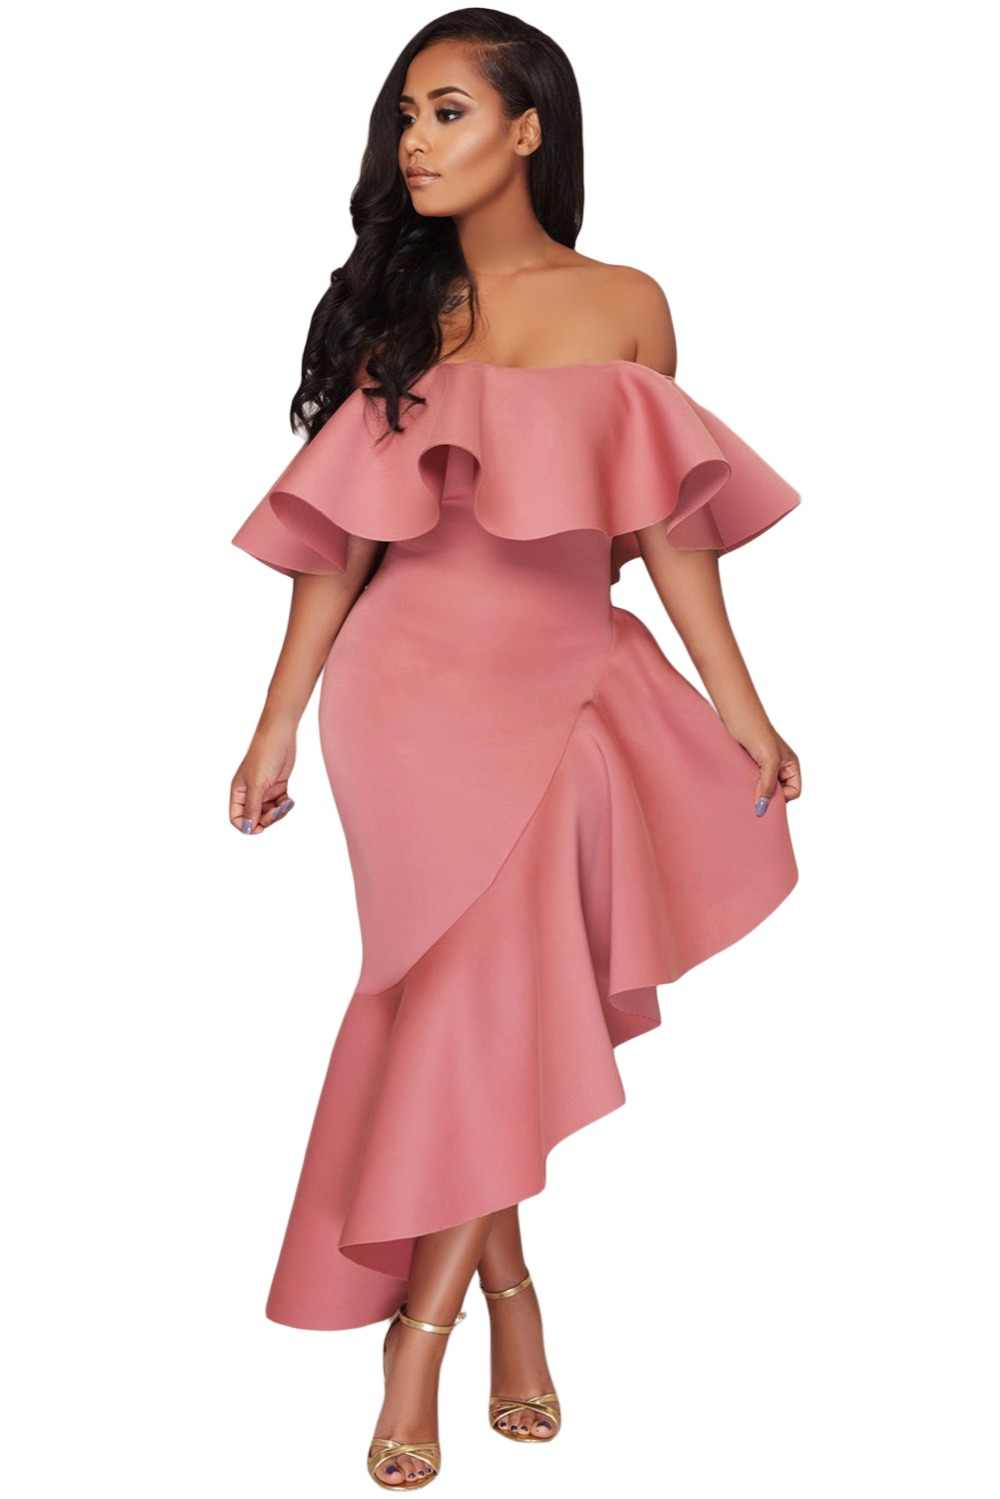 Zmvkgsoa Off Shoulder Party Dress Women Sexy Ladies Short Sleeve Asymmetric  Elegant Ruffle Dresses Vestidos Verano 922d8c35d02c